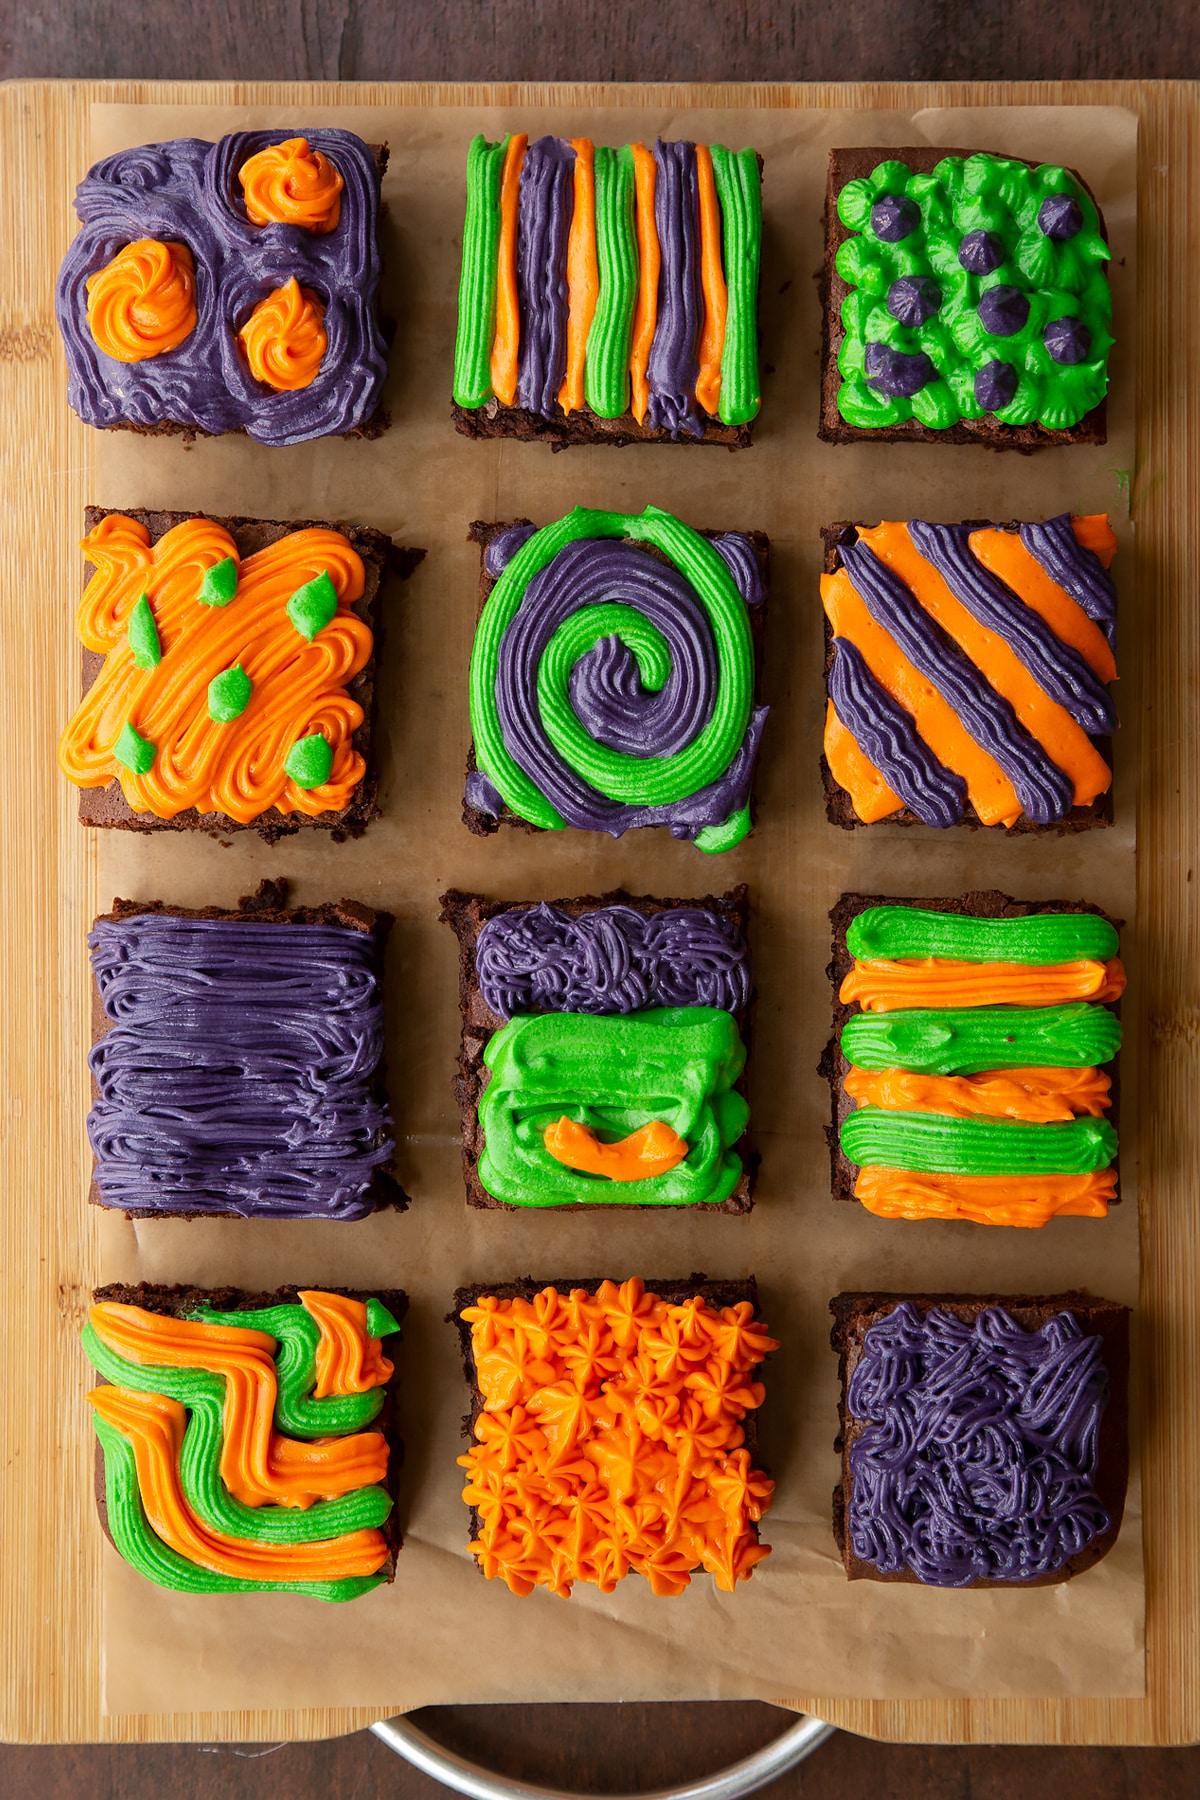 Halloween brownie on baking paper, cut into 12 pieces. Orange, green and purple frosting has been piped on top of the brownies in various patterns.